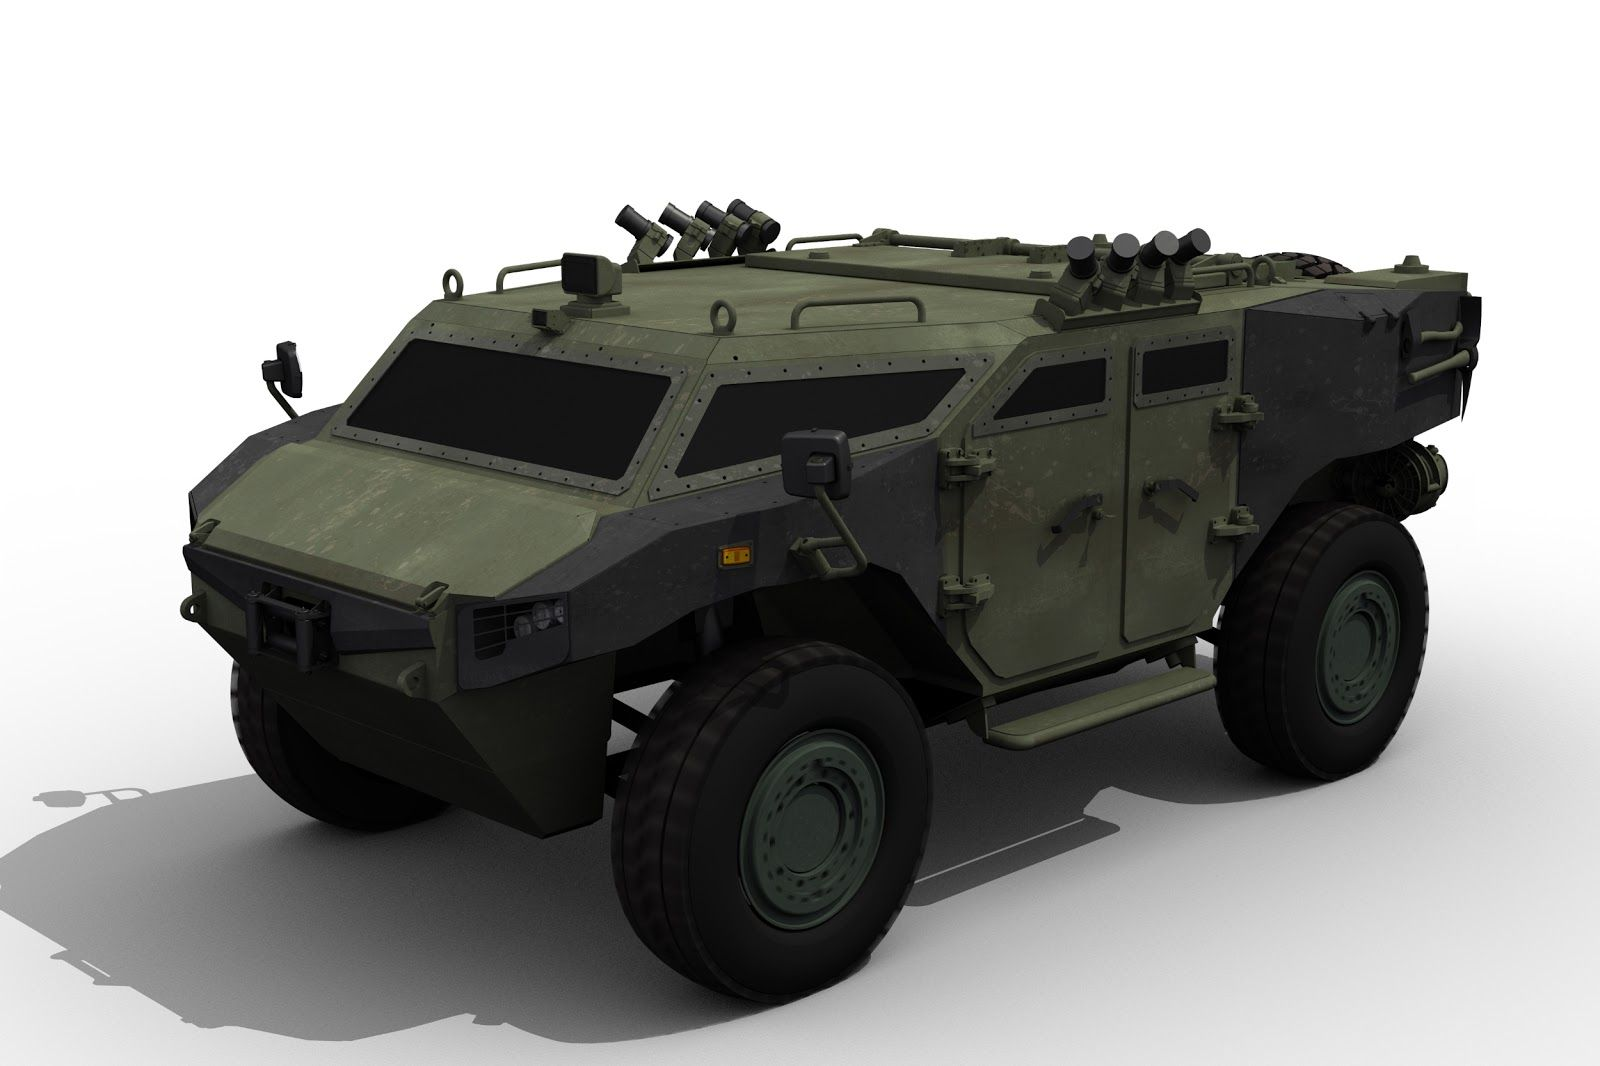 New Turkish AFV - From SNAFU!